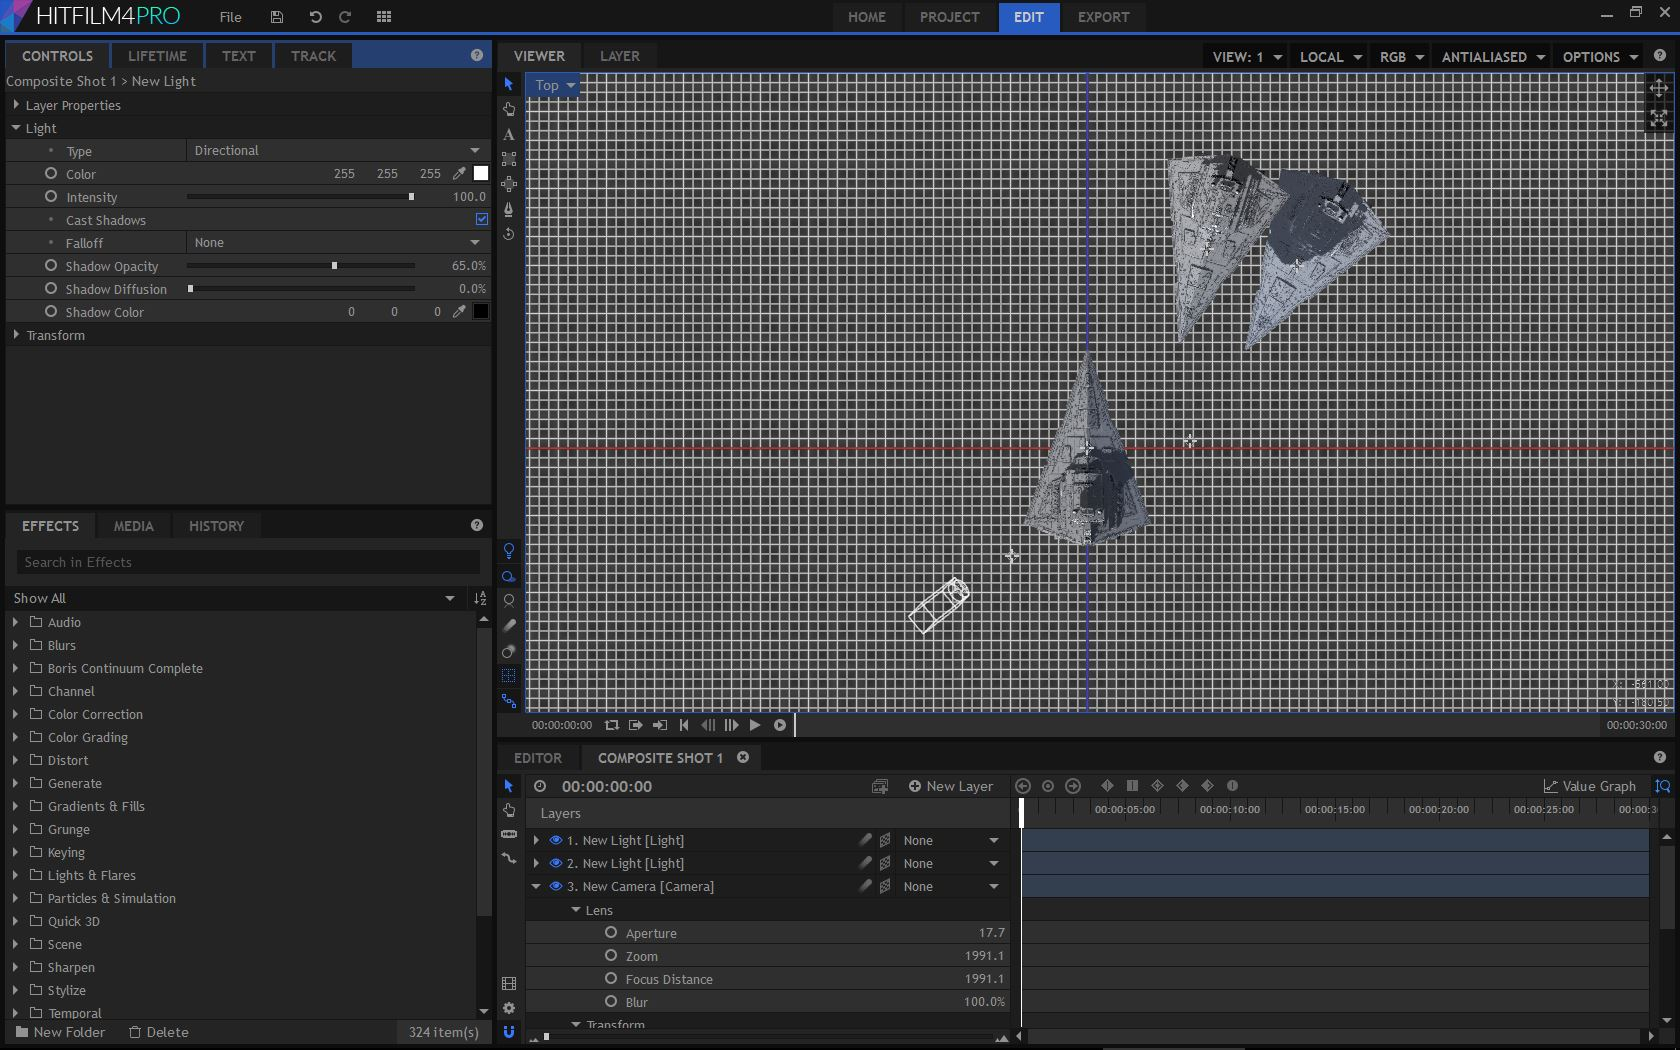 Orthographic views - HitFilm Pro 3D space interface